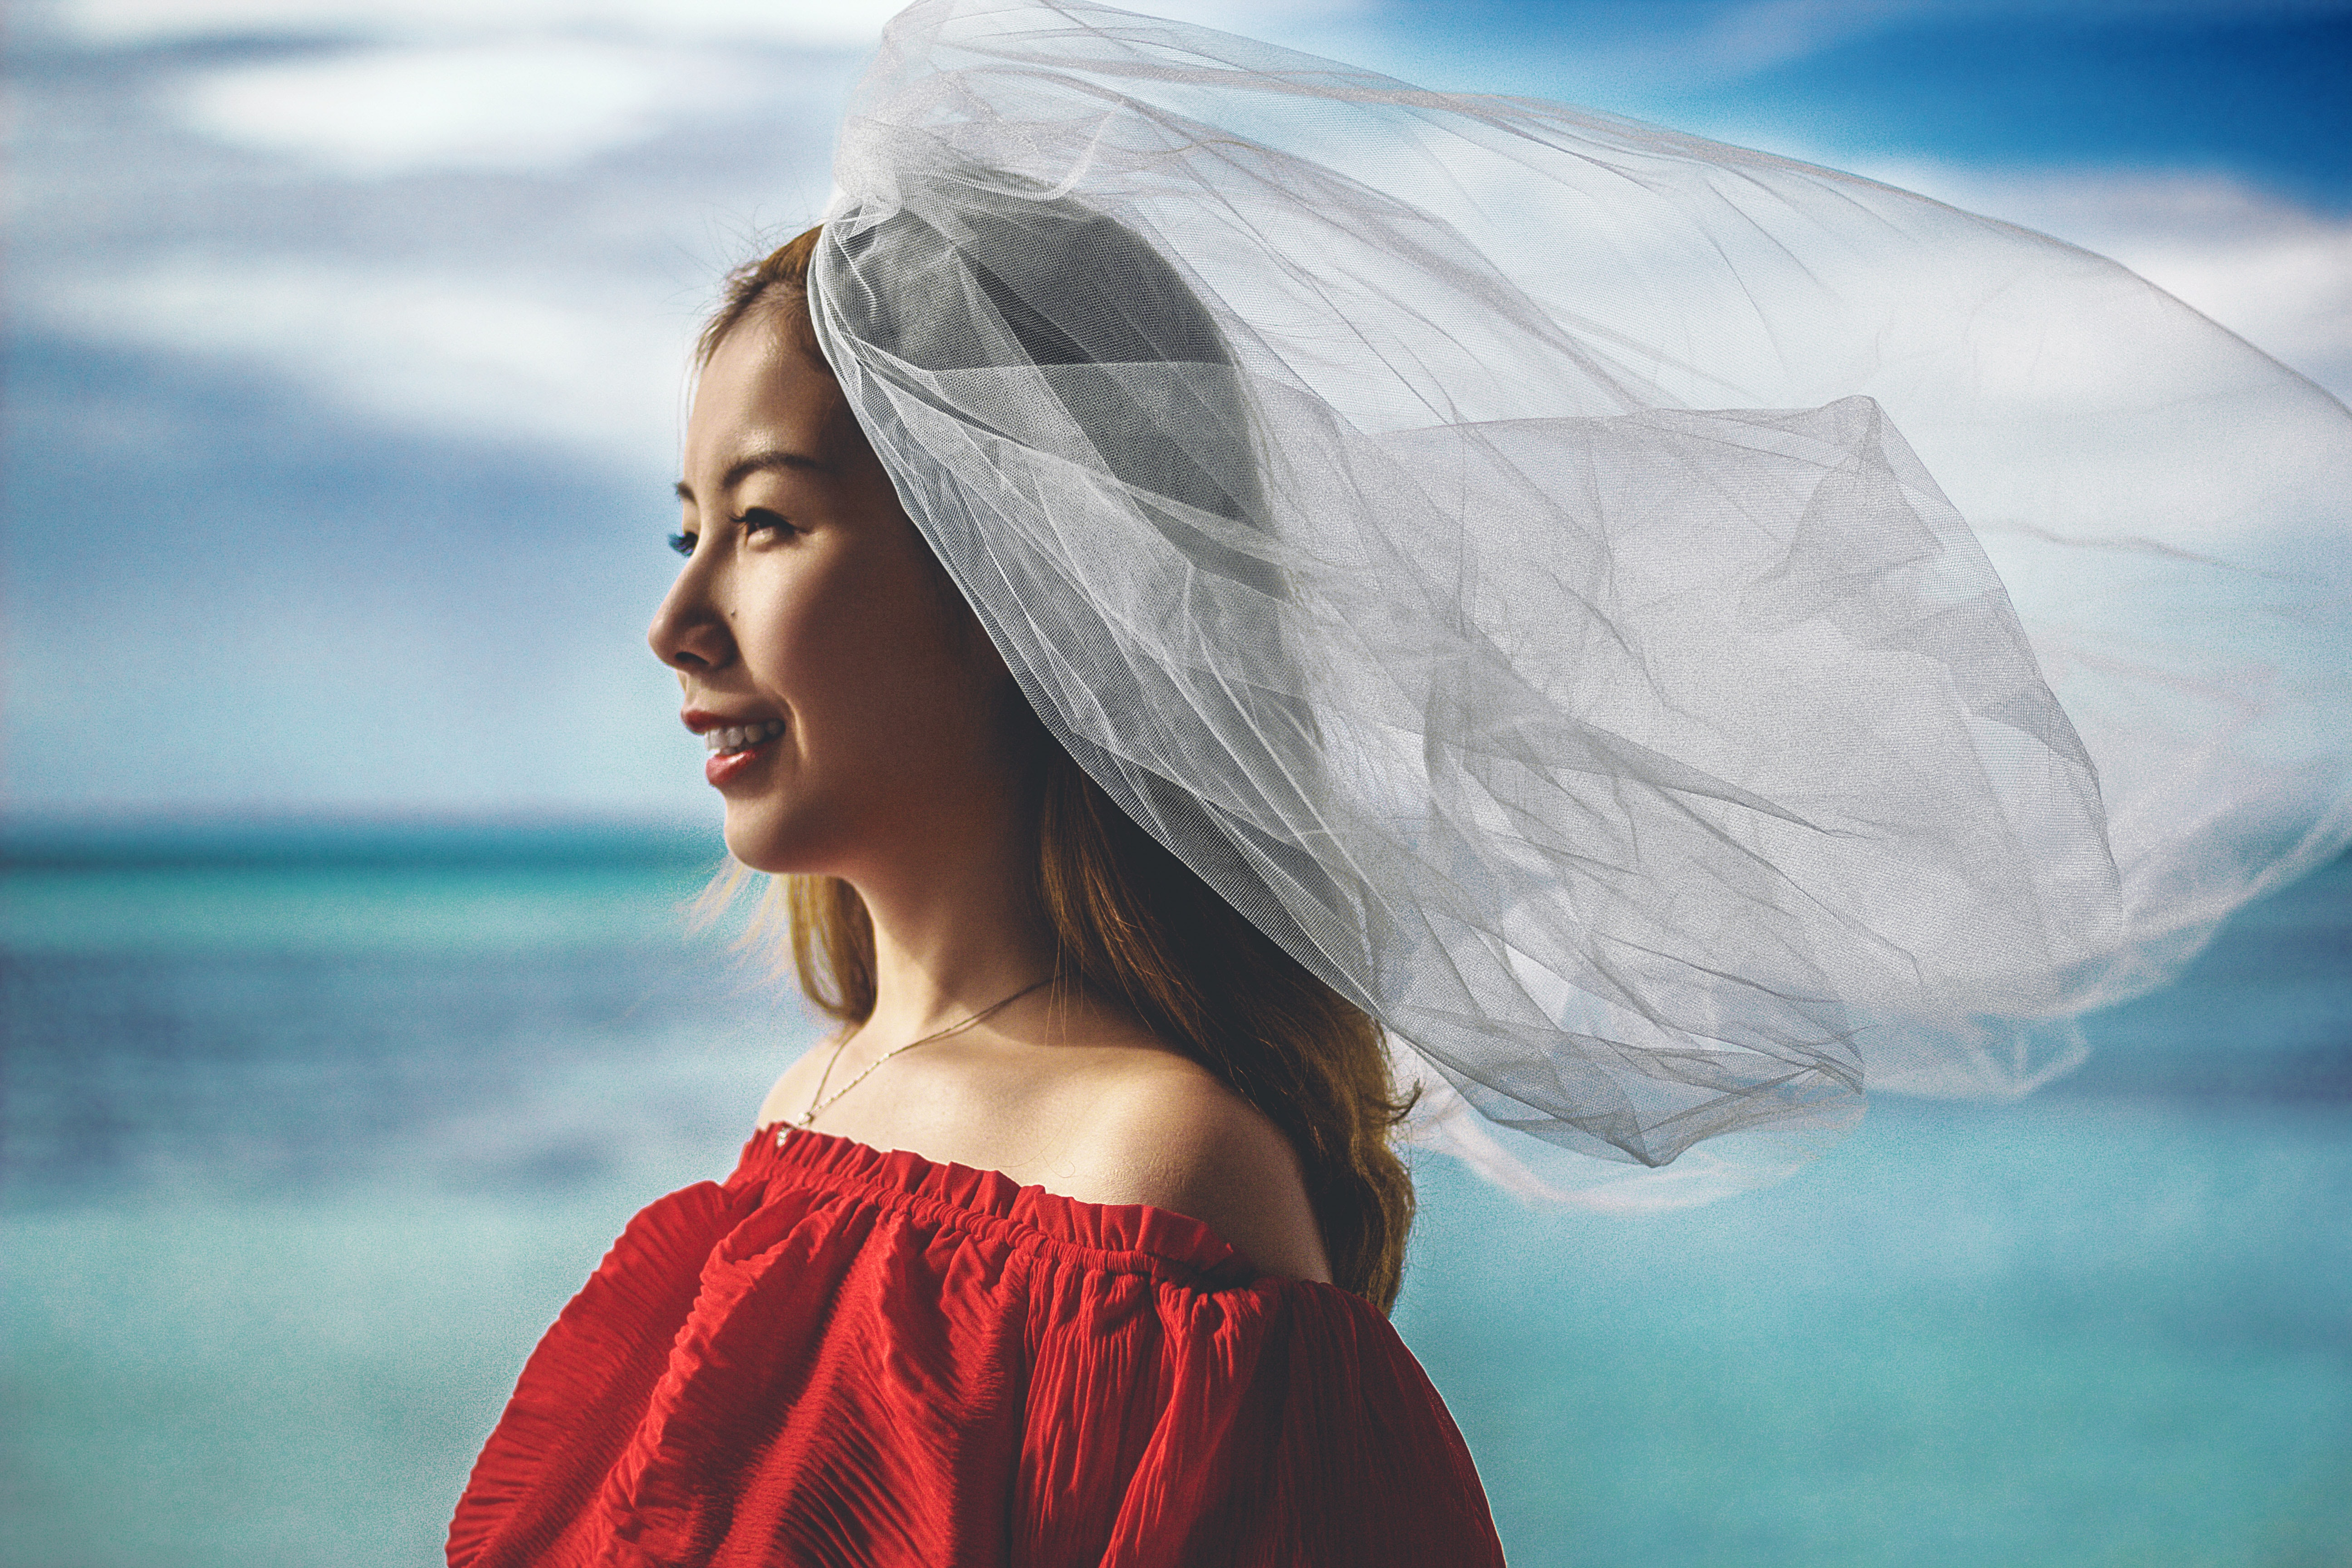 A bride wearing a red dress and veil smiles in front of blue water